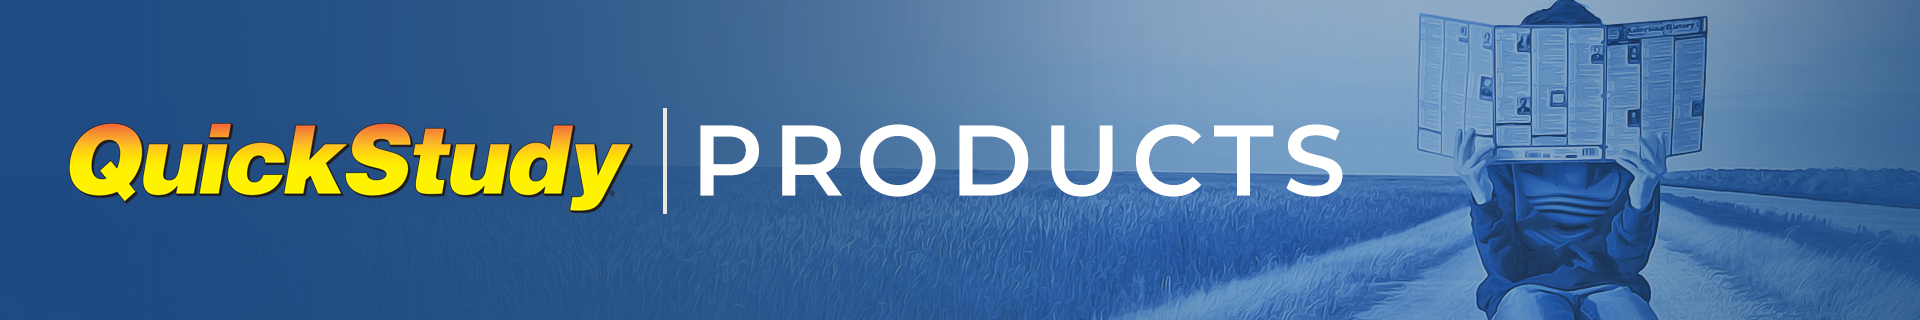 products-pagebanner.jpg